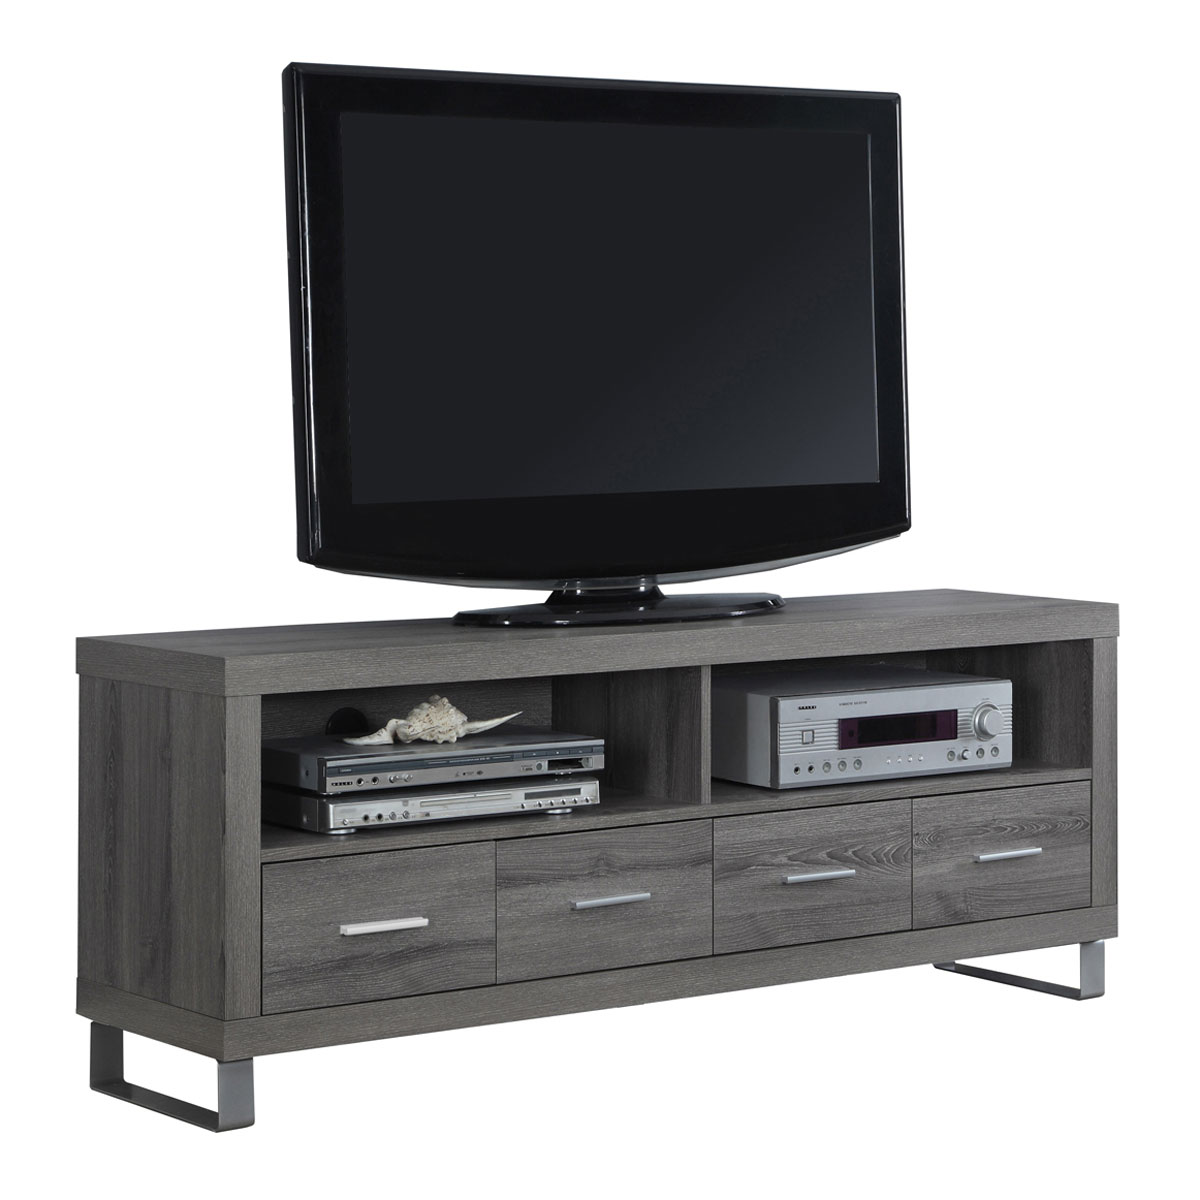 monarch specialties 60 entertainment center tv stand with 4 drawers dark taupe 878218000705 ebay. Black Bedroom Furniture Sets. Home Design Ideas